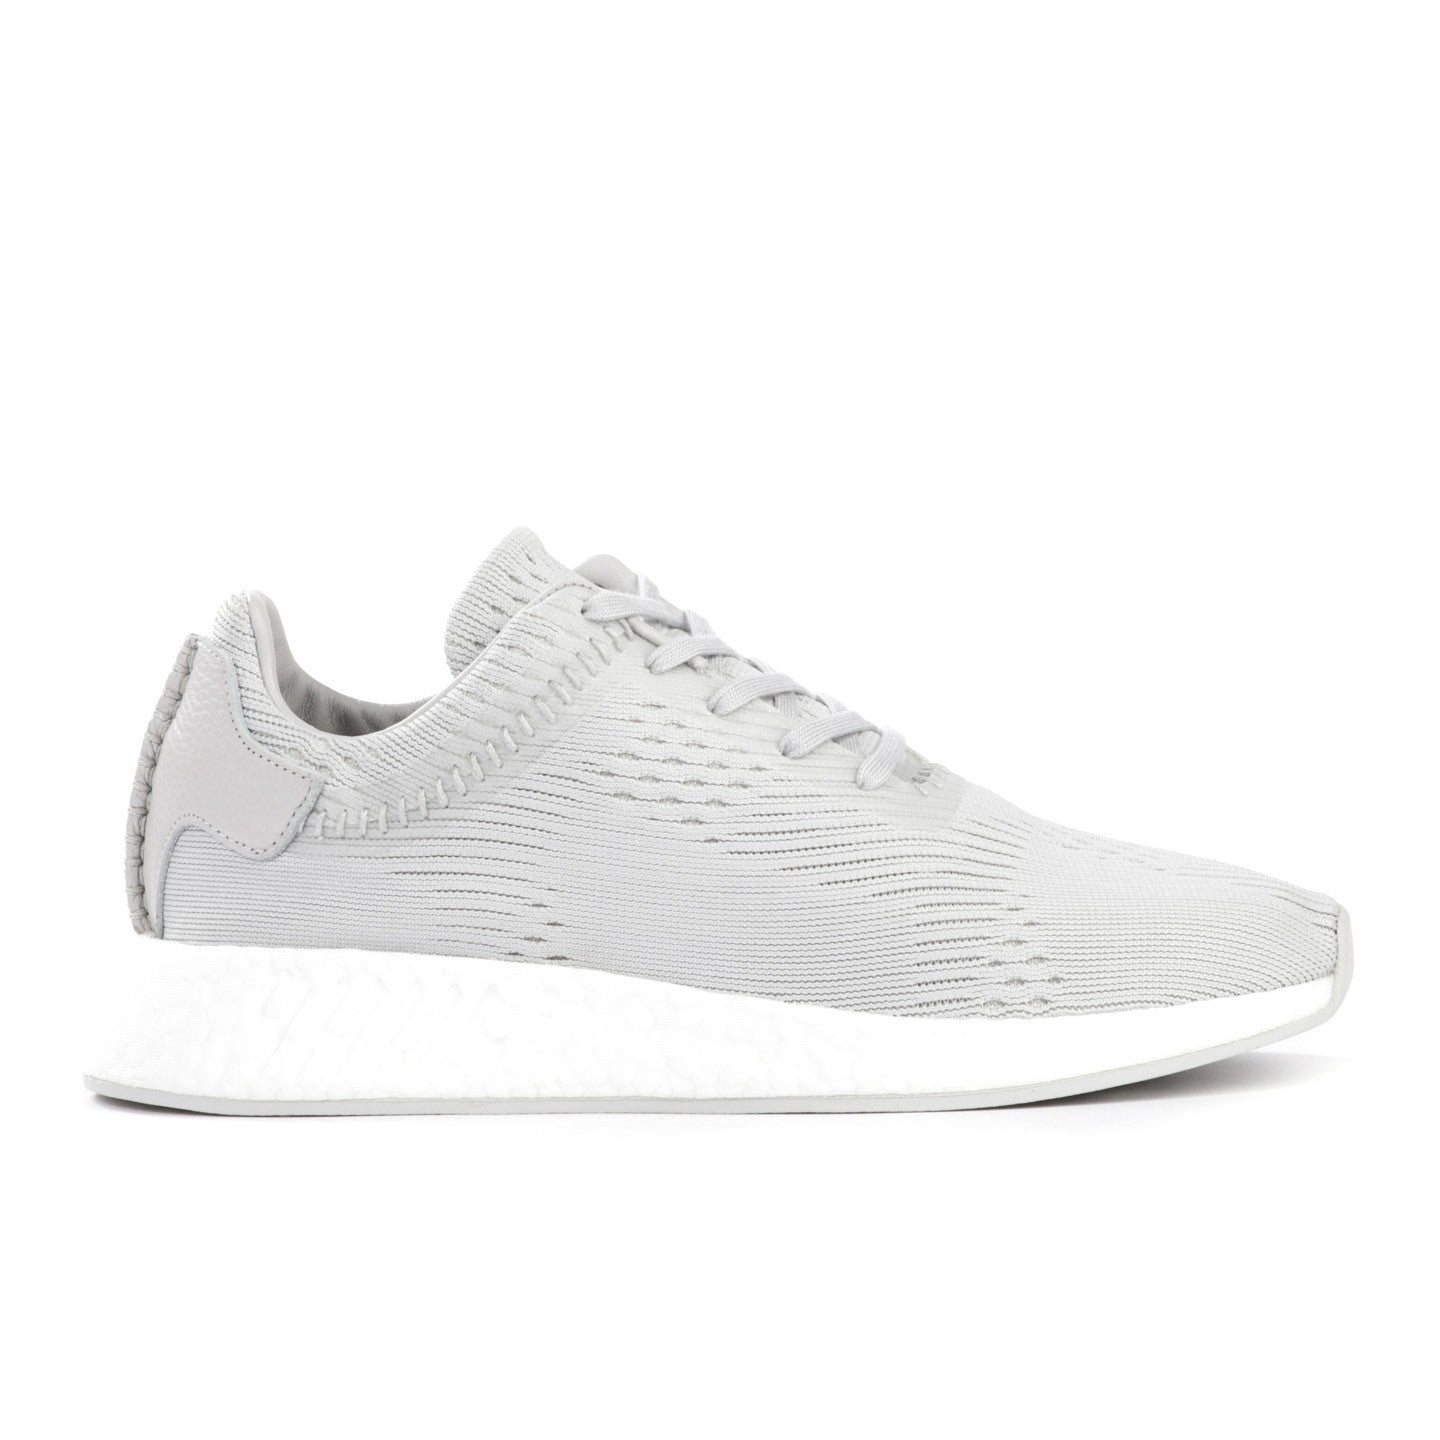 sports shoes 16fac c7255 ADIDAS ORIGINALS BY WING + HORNS NMD R2 PRIME KNIT HINT GREY